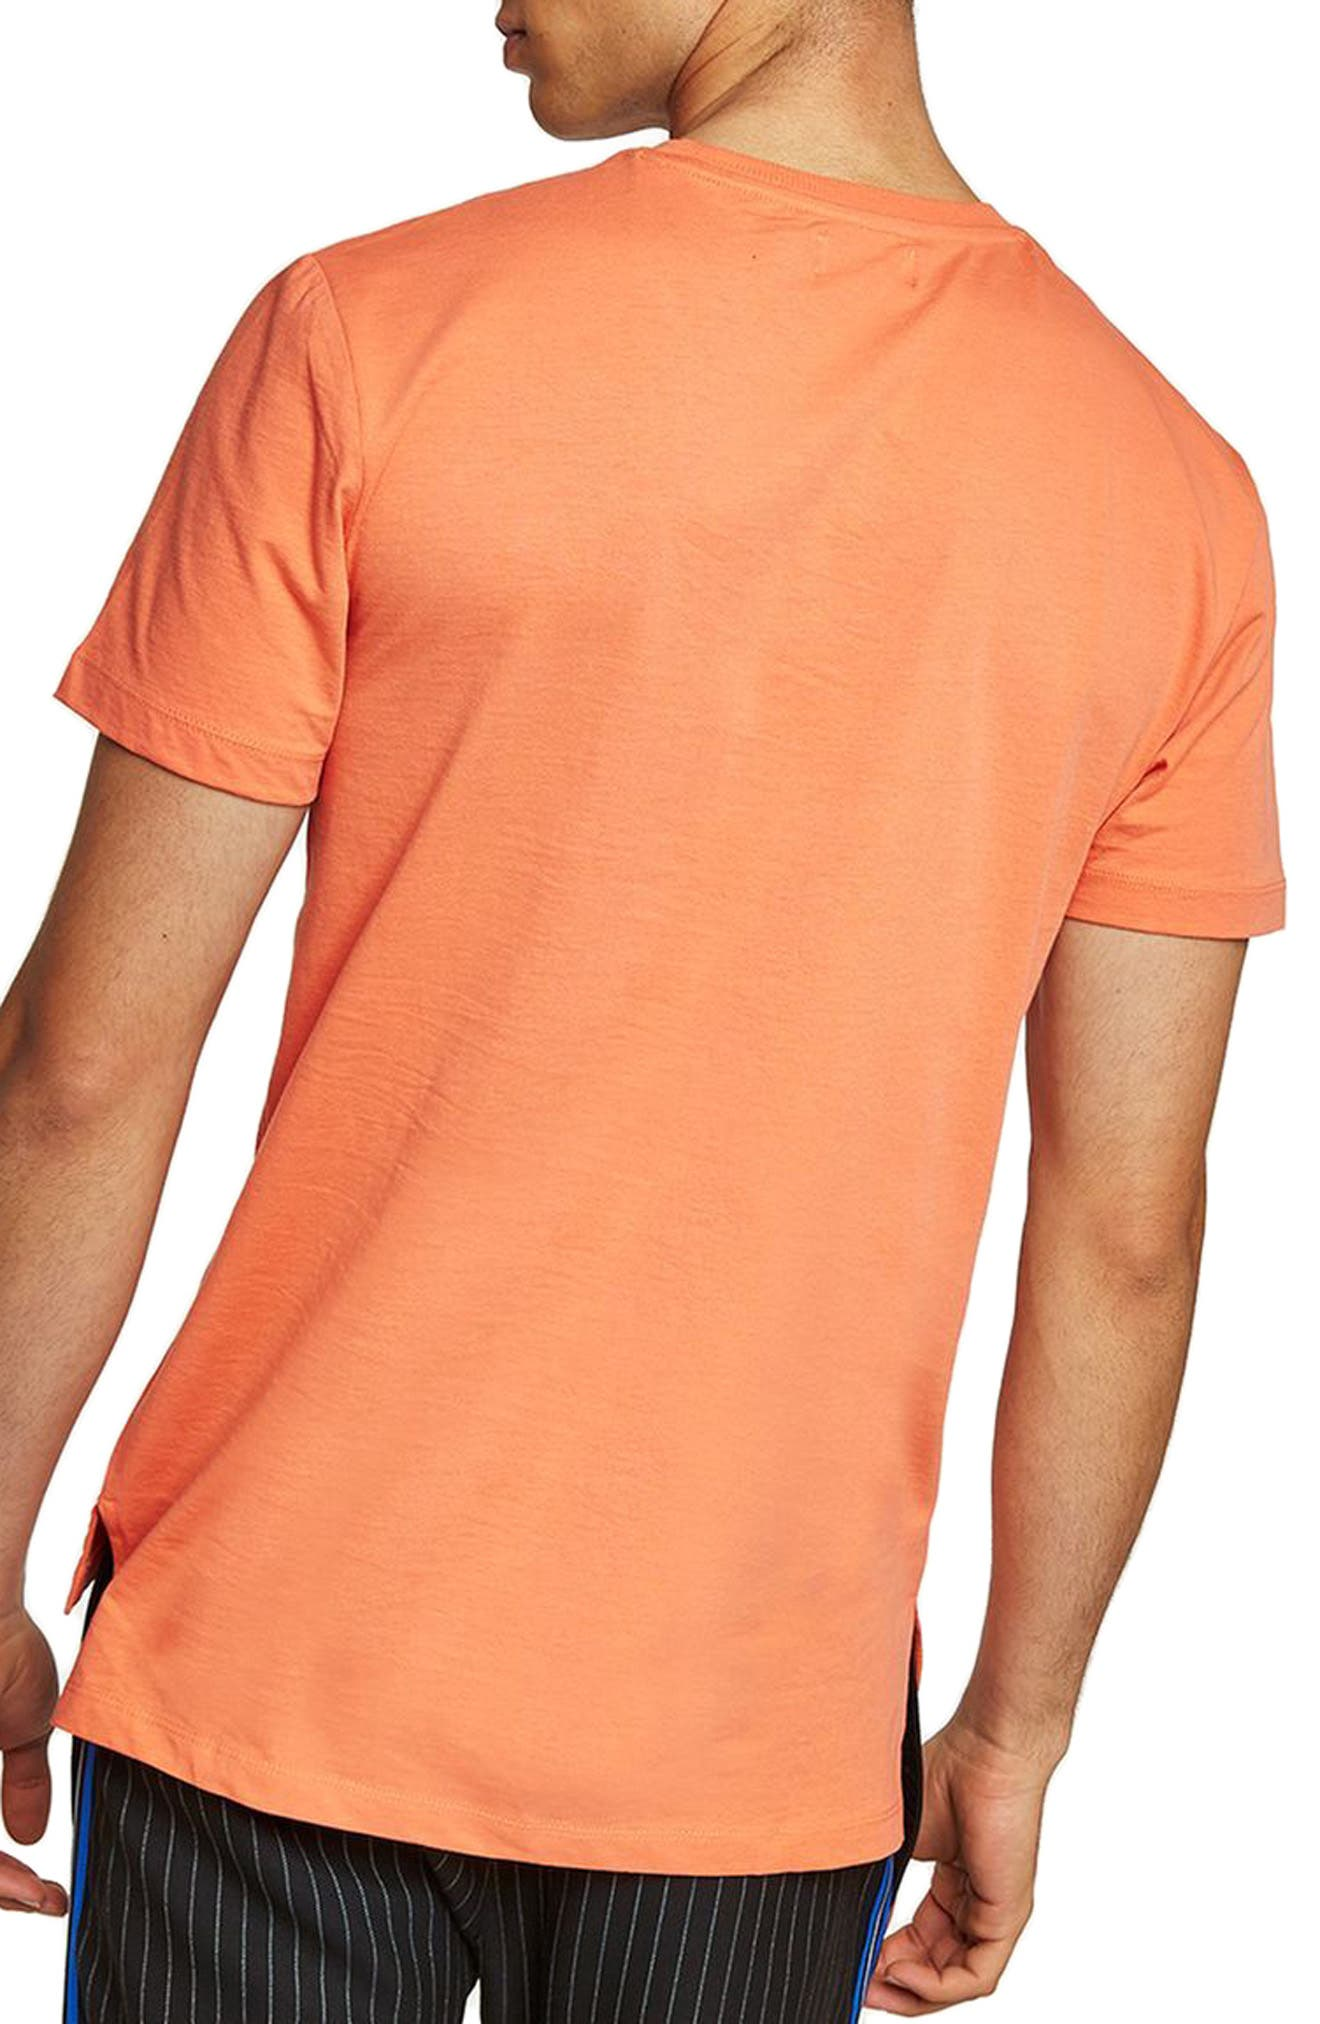 Ensign Graphic T-Shirt,                         Main,                         color, 950